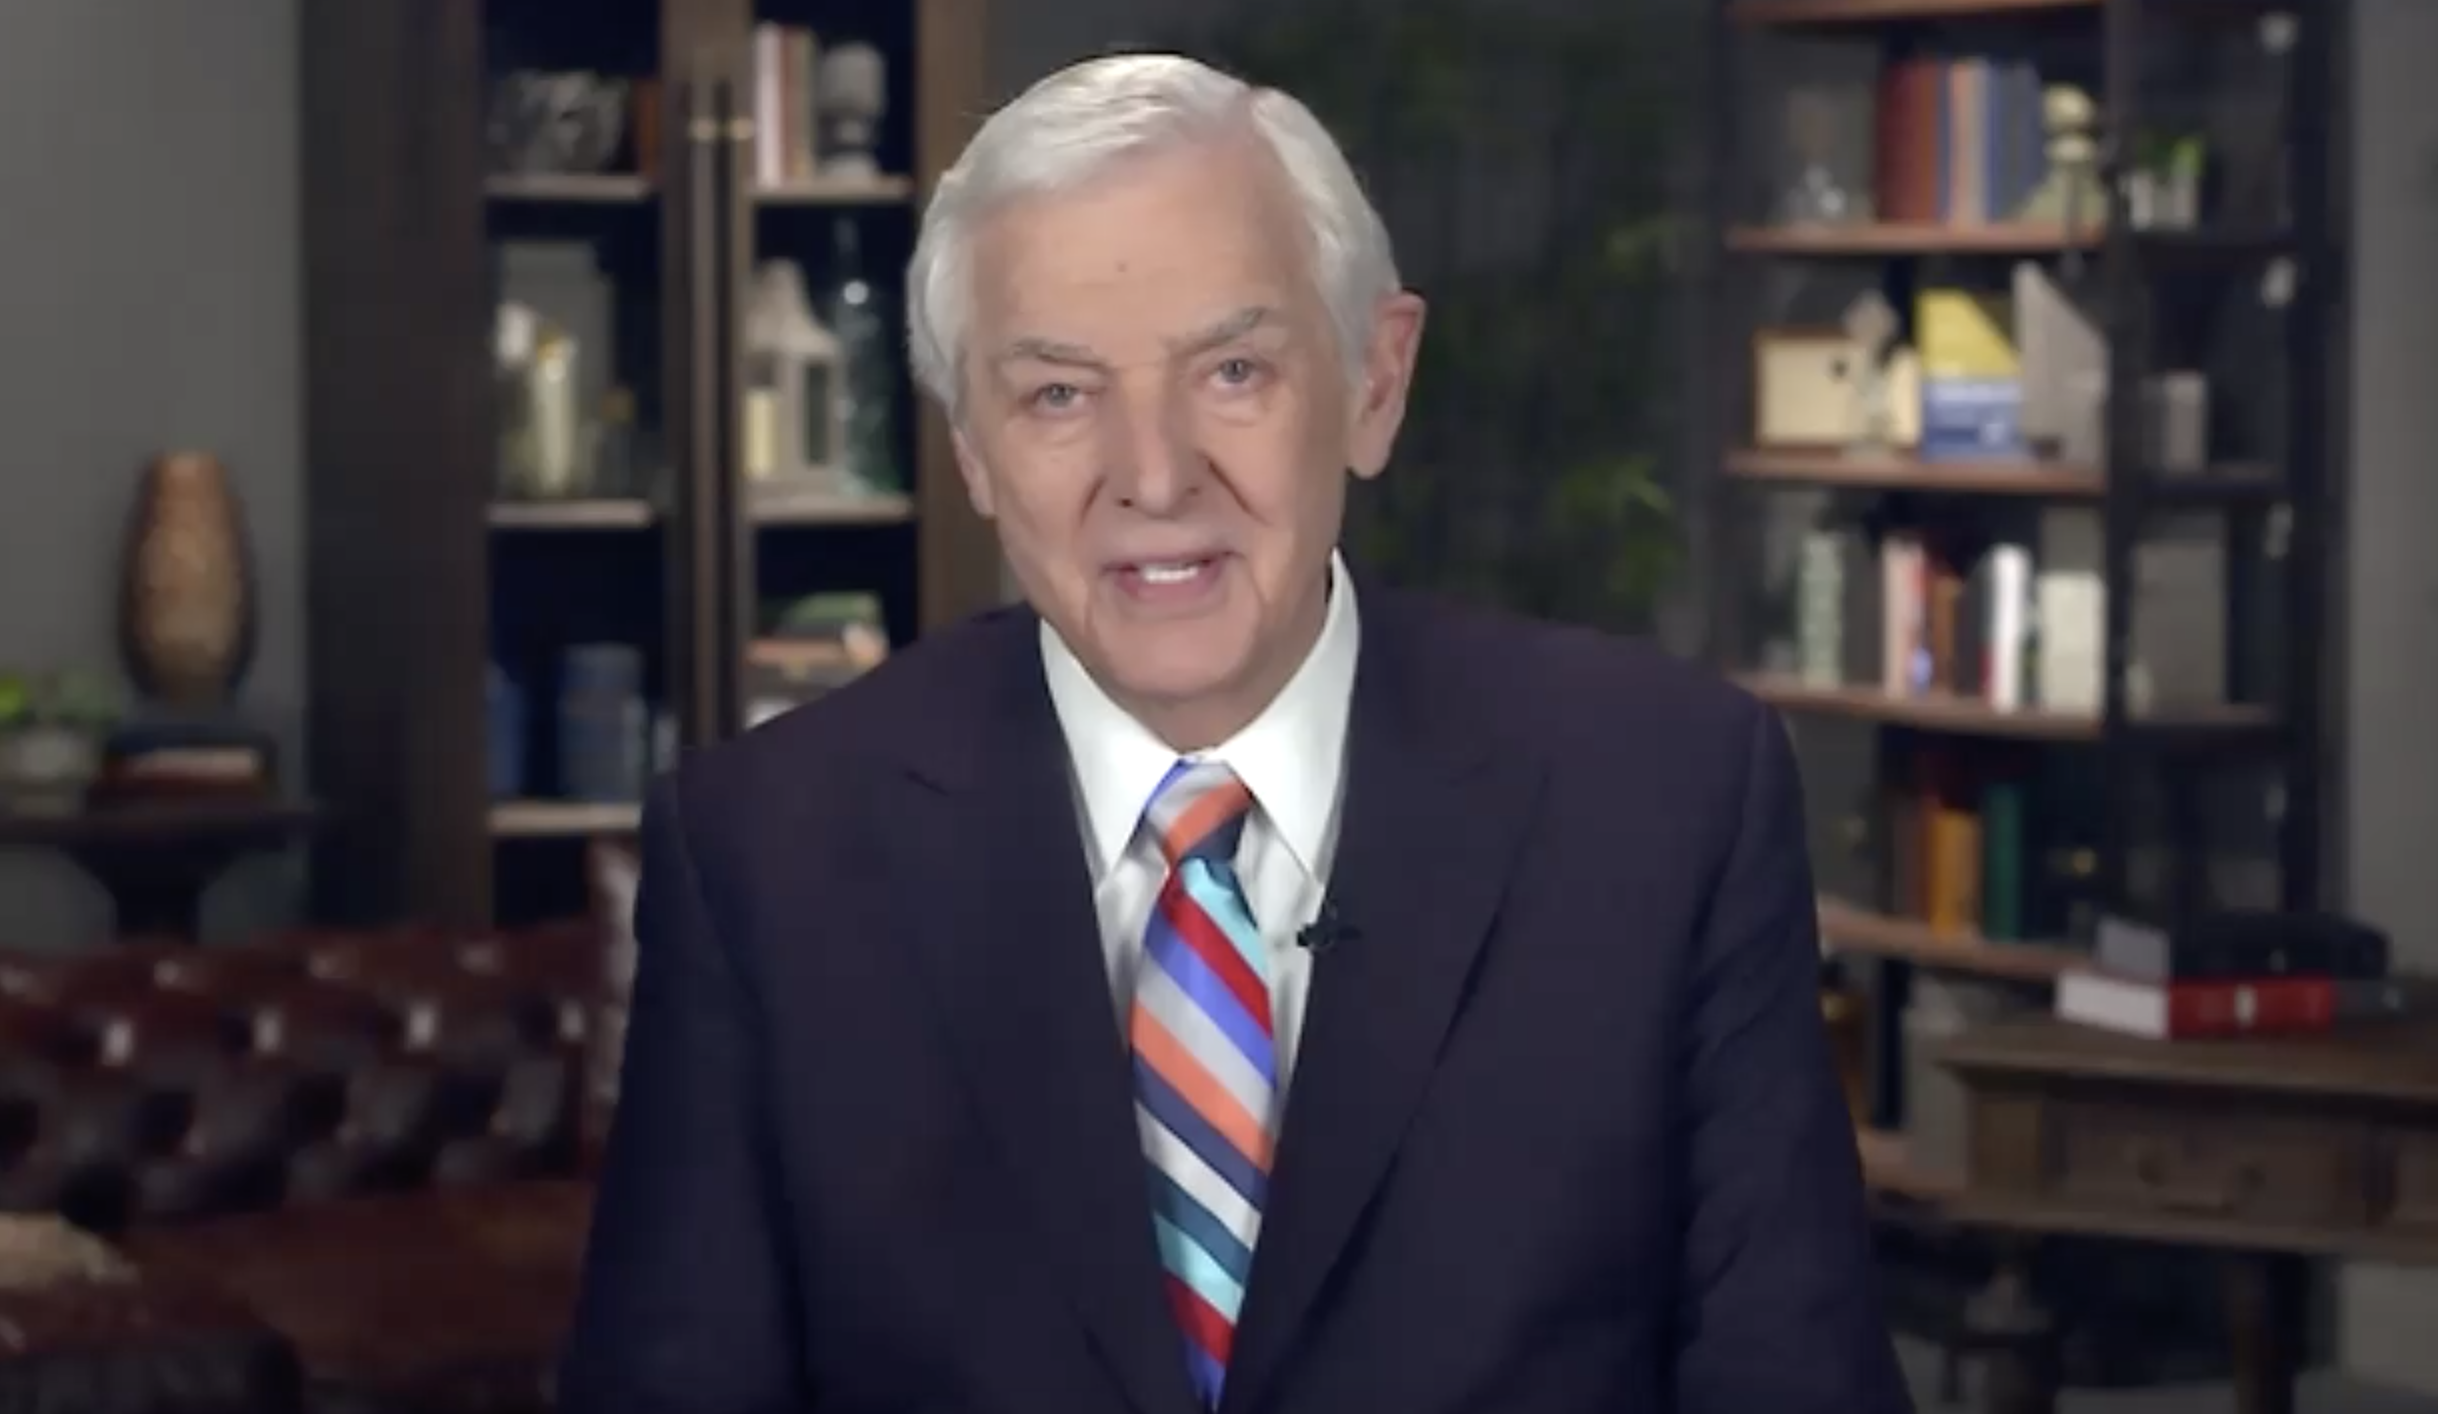 Dr David Jeremiah says Christians must move forward and not forget who they represent this election